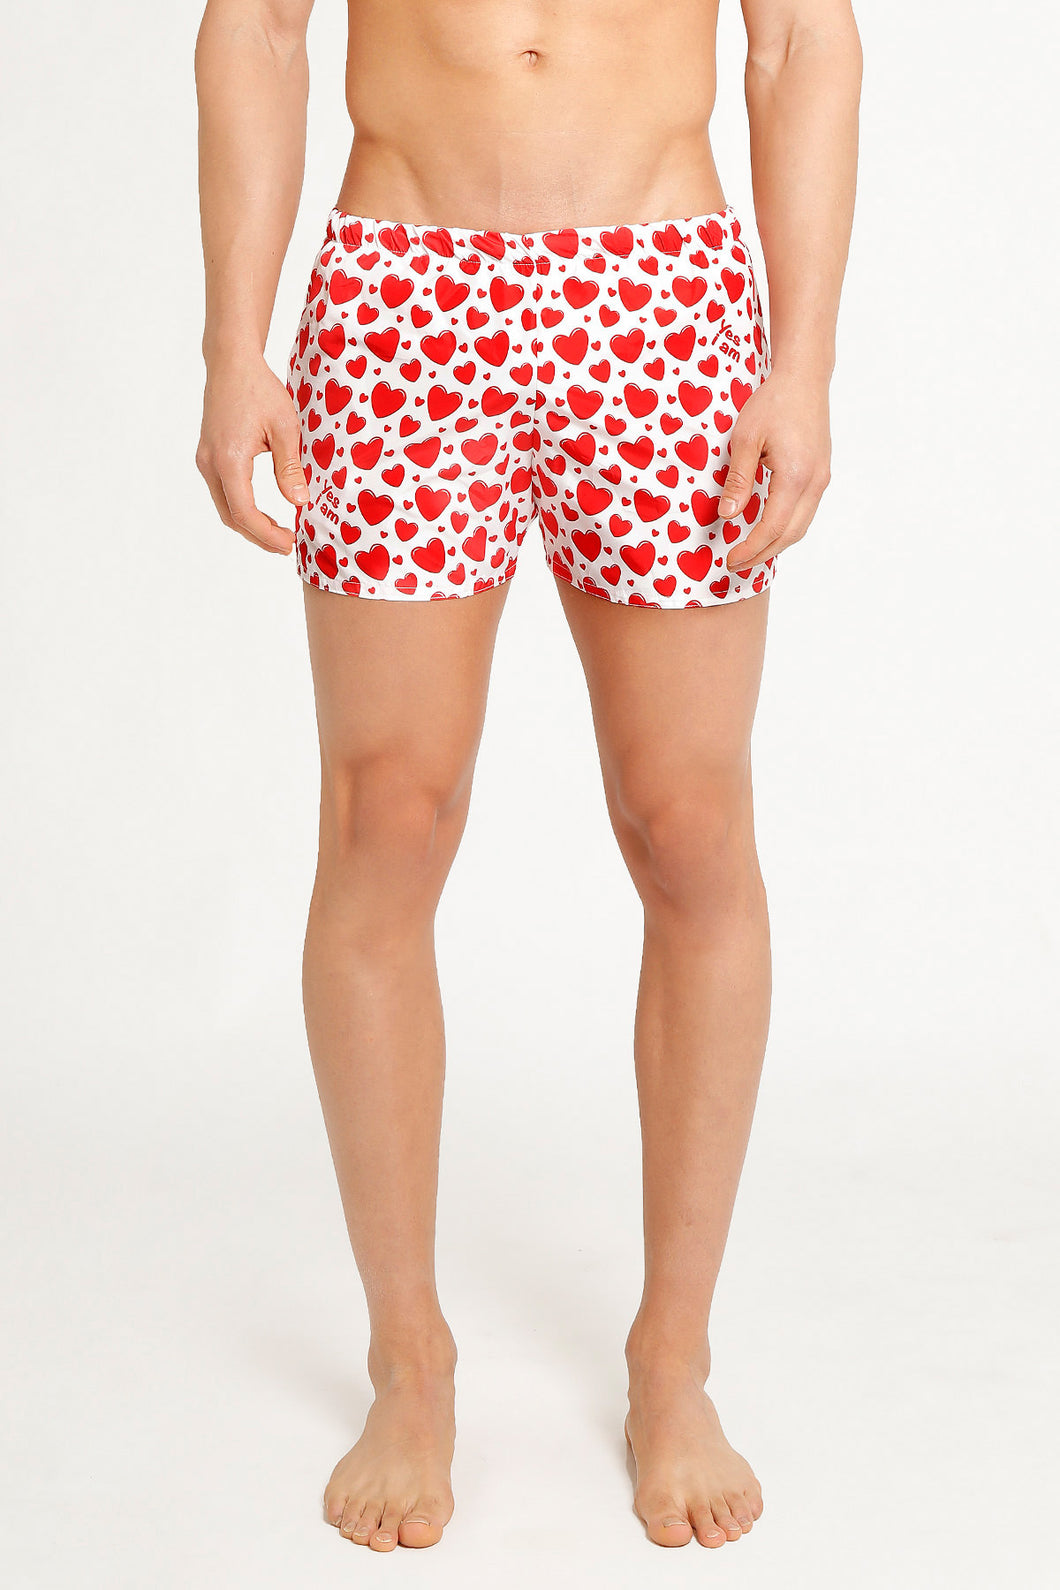 SHORTS RED HEARTS